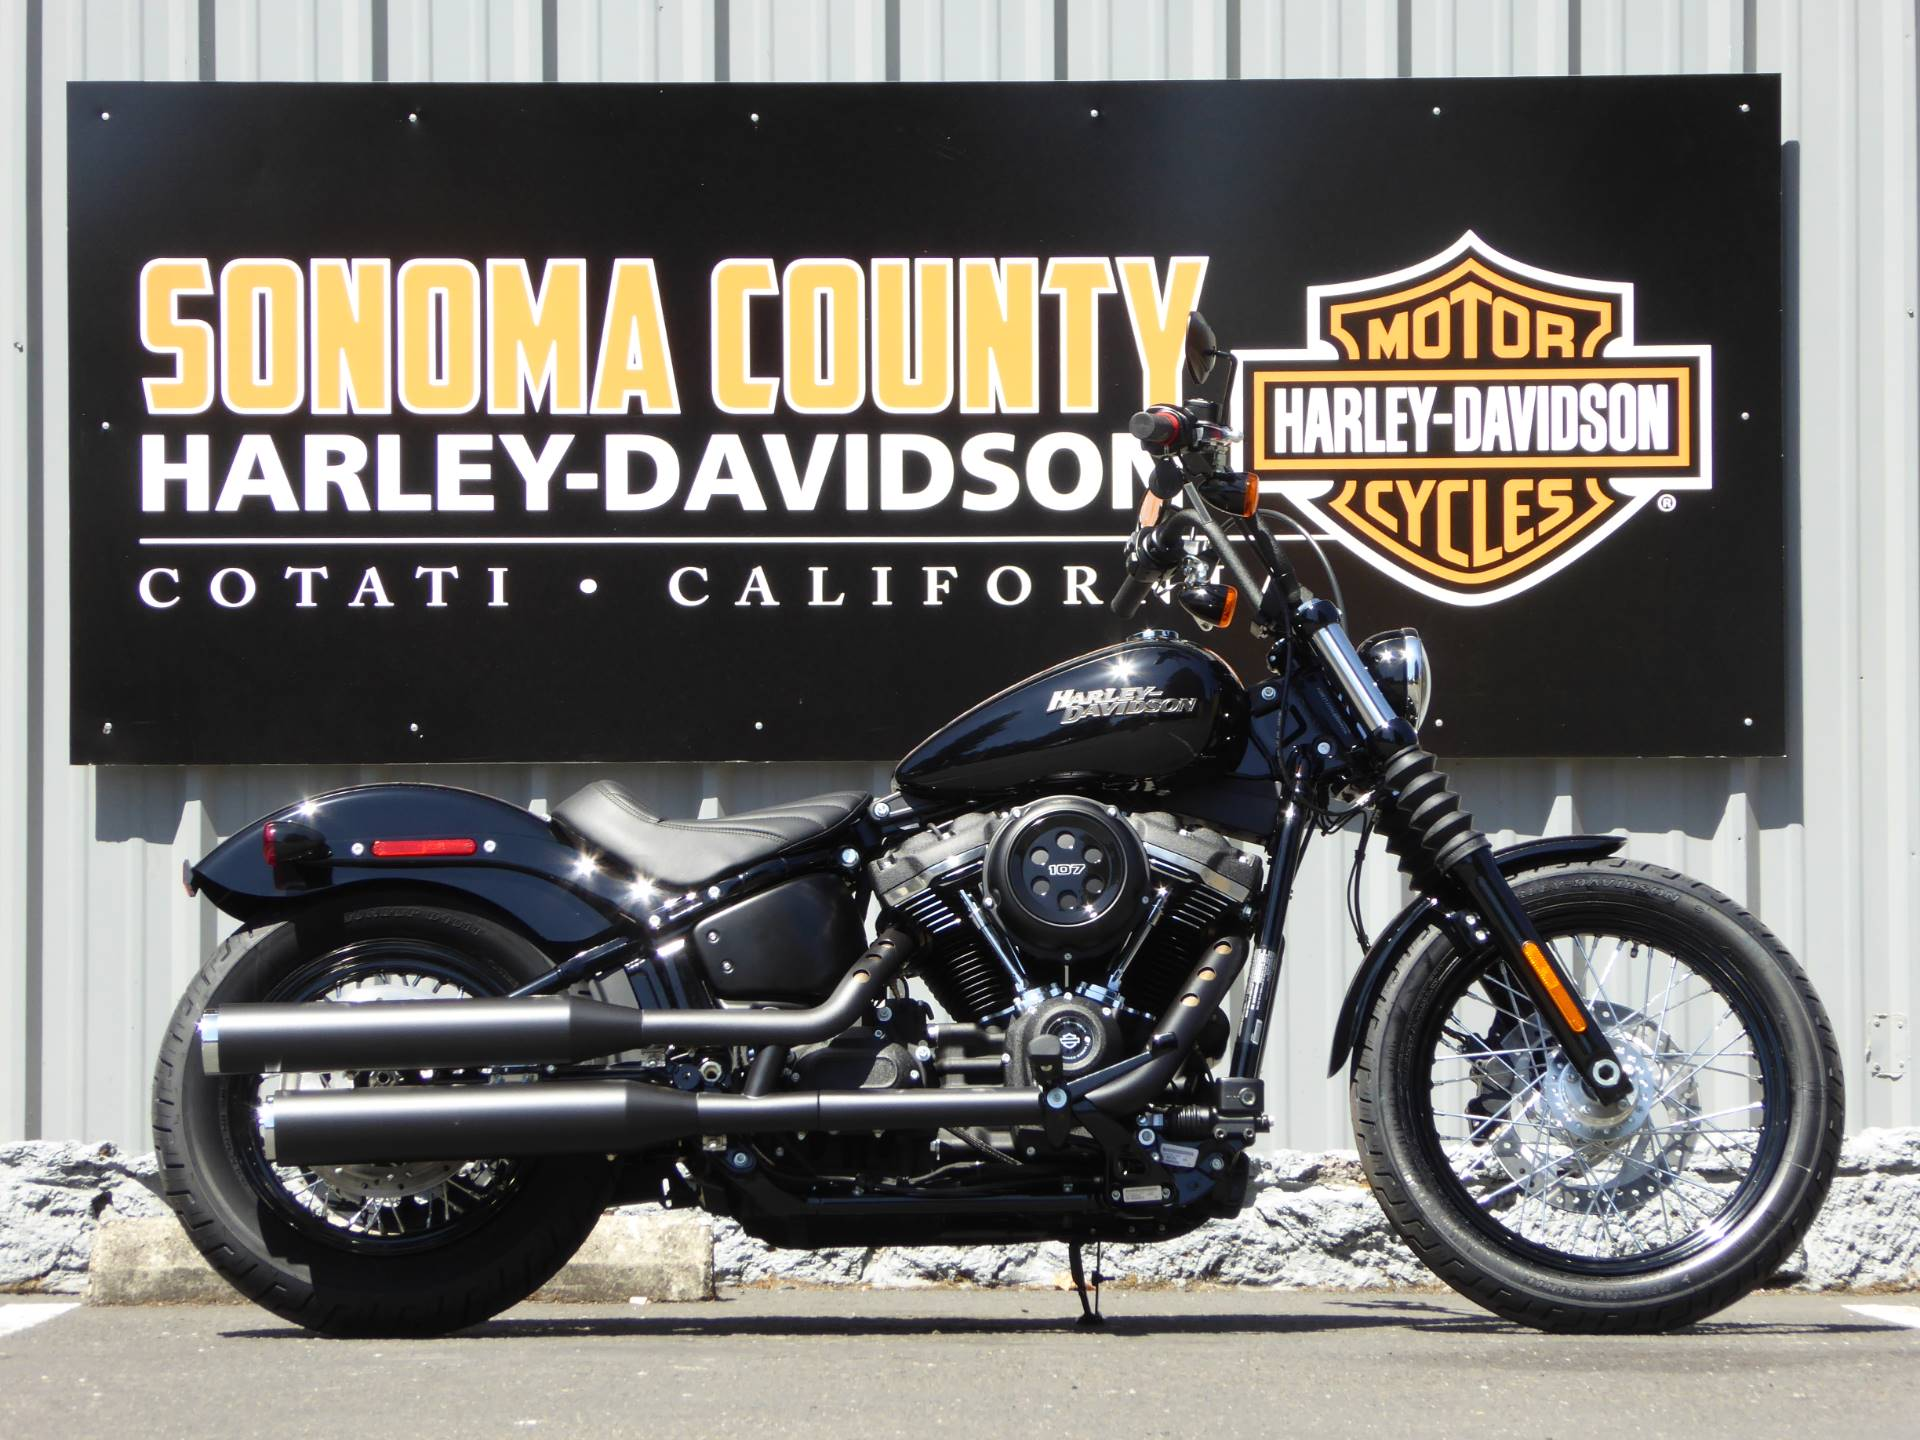 2020 Harley-Davidson FXBB Street Bob in Cotati, California - Photo 1